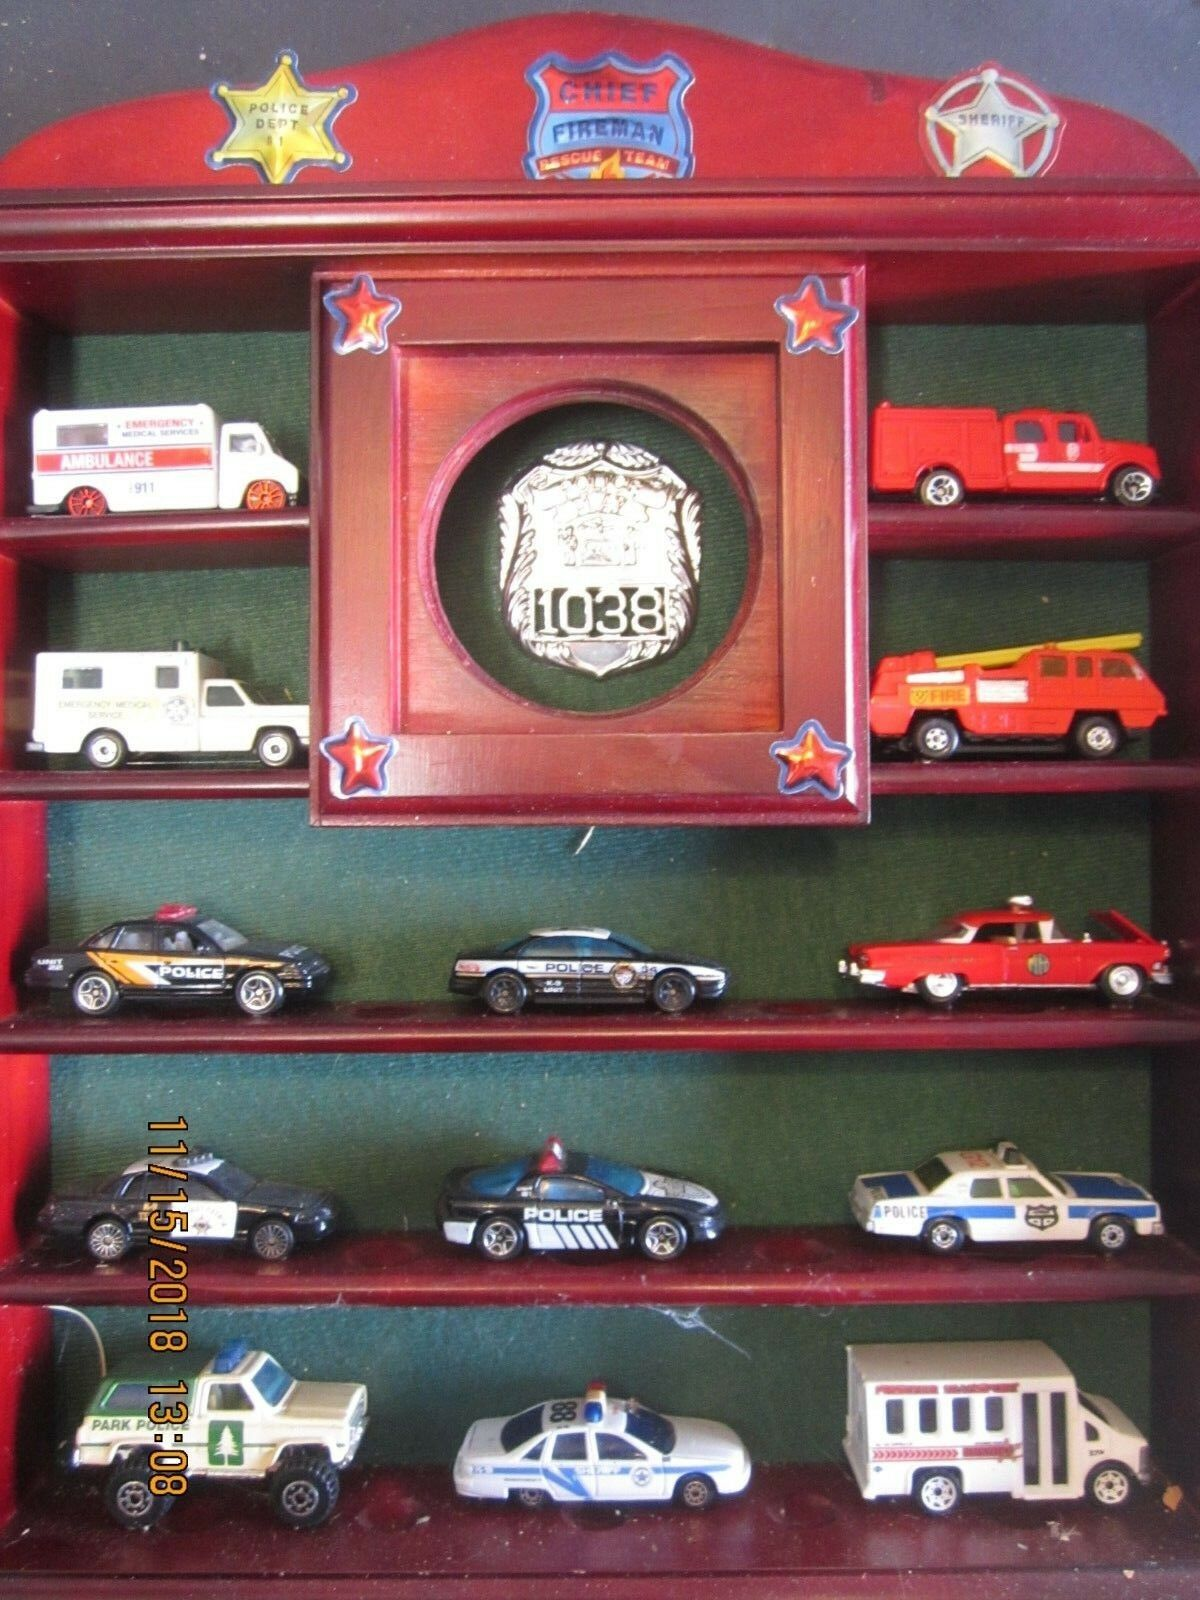 13-1/64 Diecast Hotwheel,Matchbox,Maisto,RaceChamp etc Police/Fire w/Wood Case